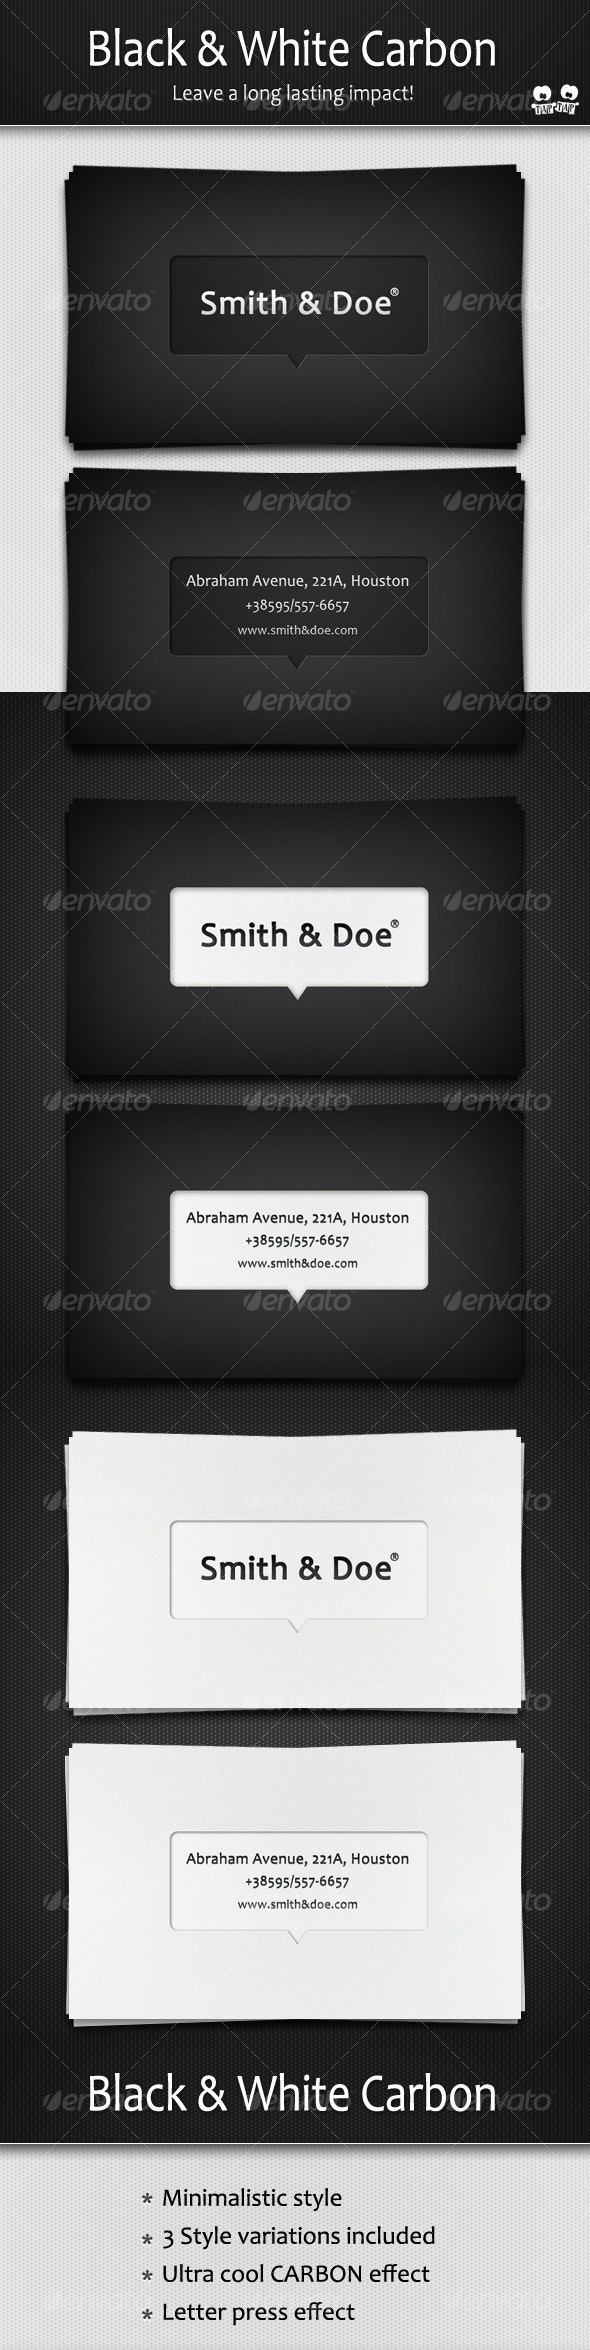 Black and White Carbon business cards - Corporate Business Cards